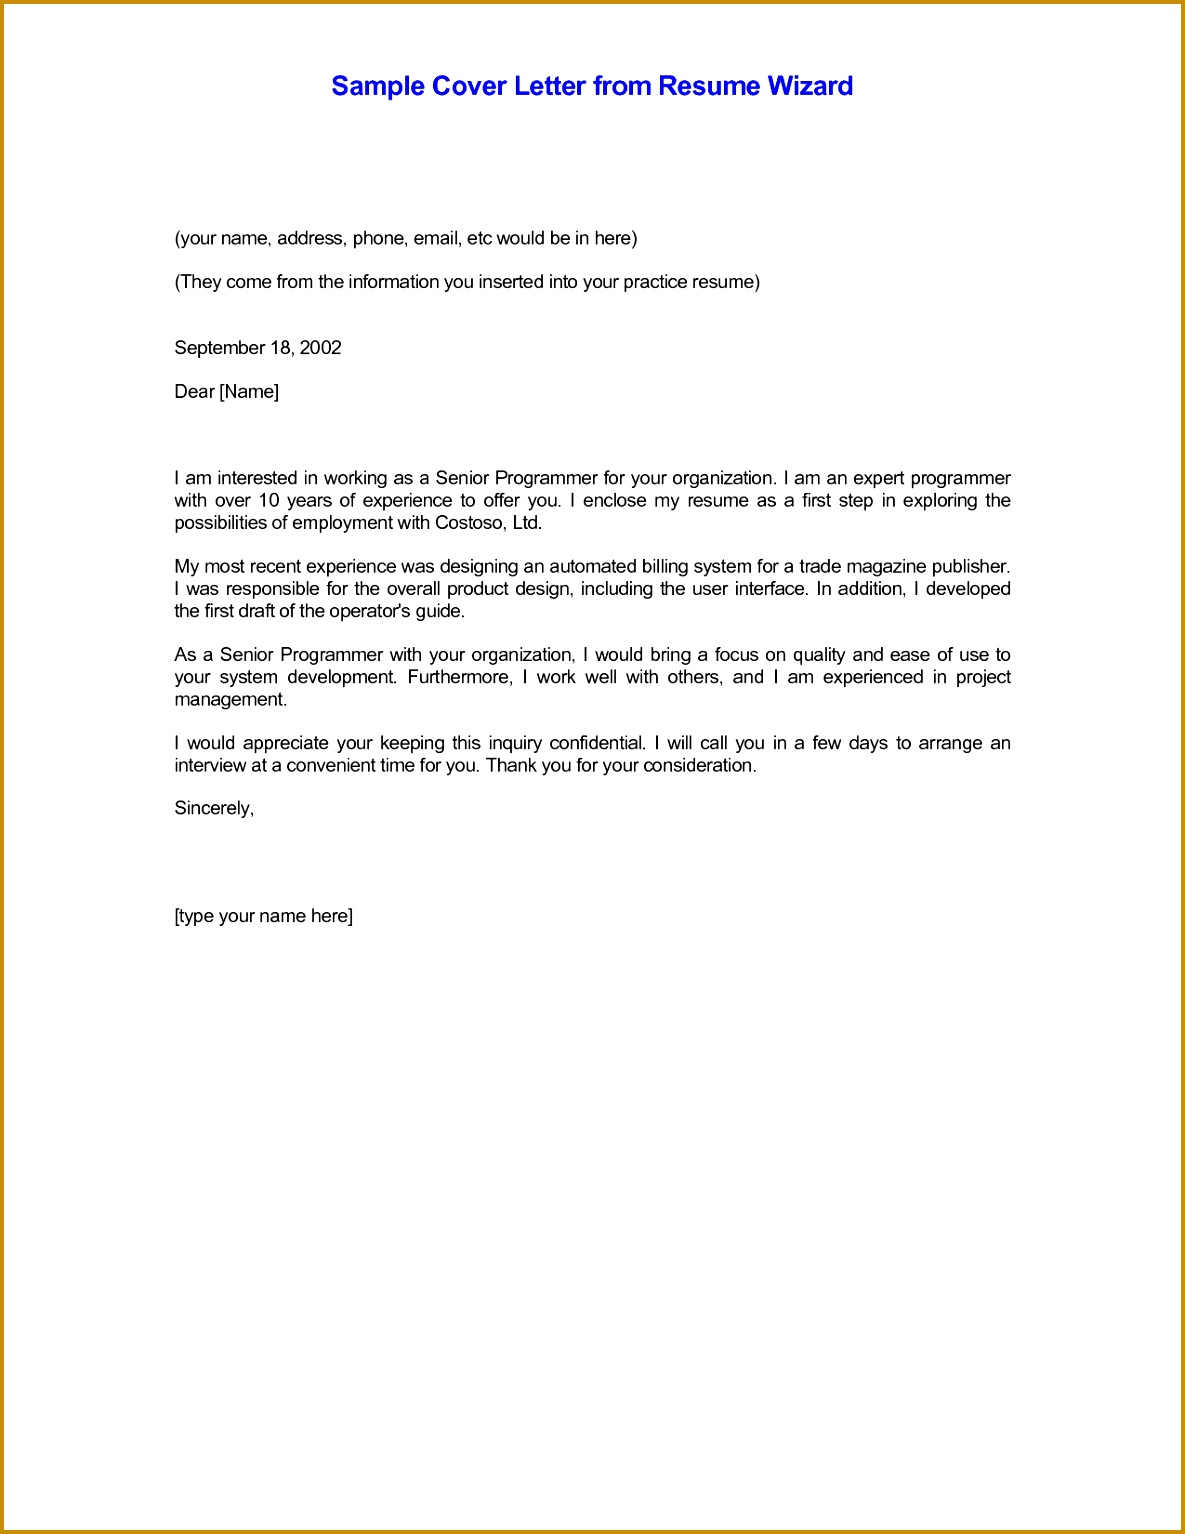 Cover Letter Email Format 15341185